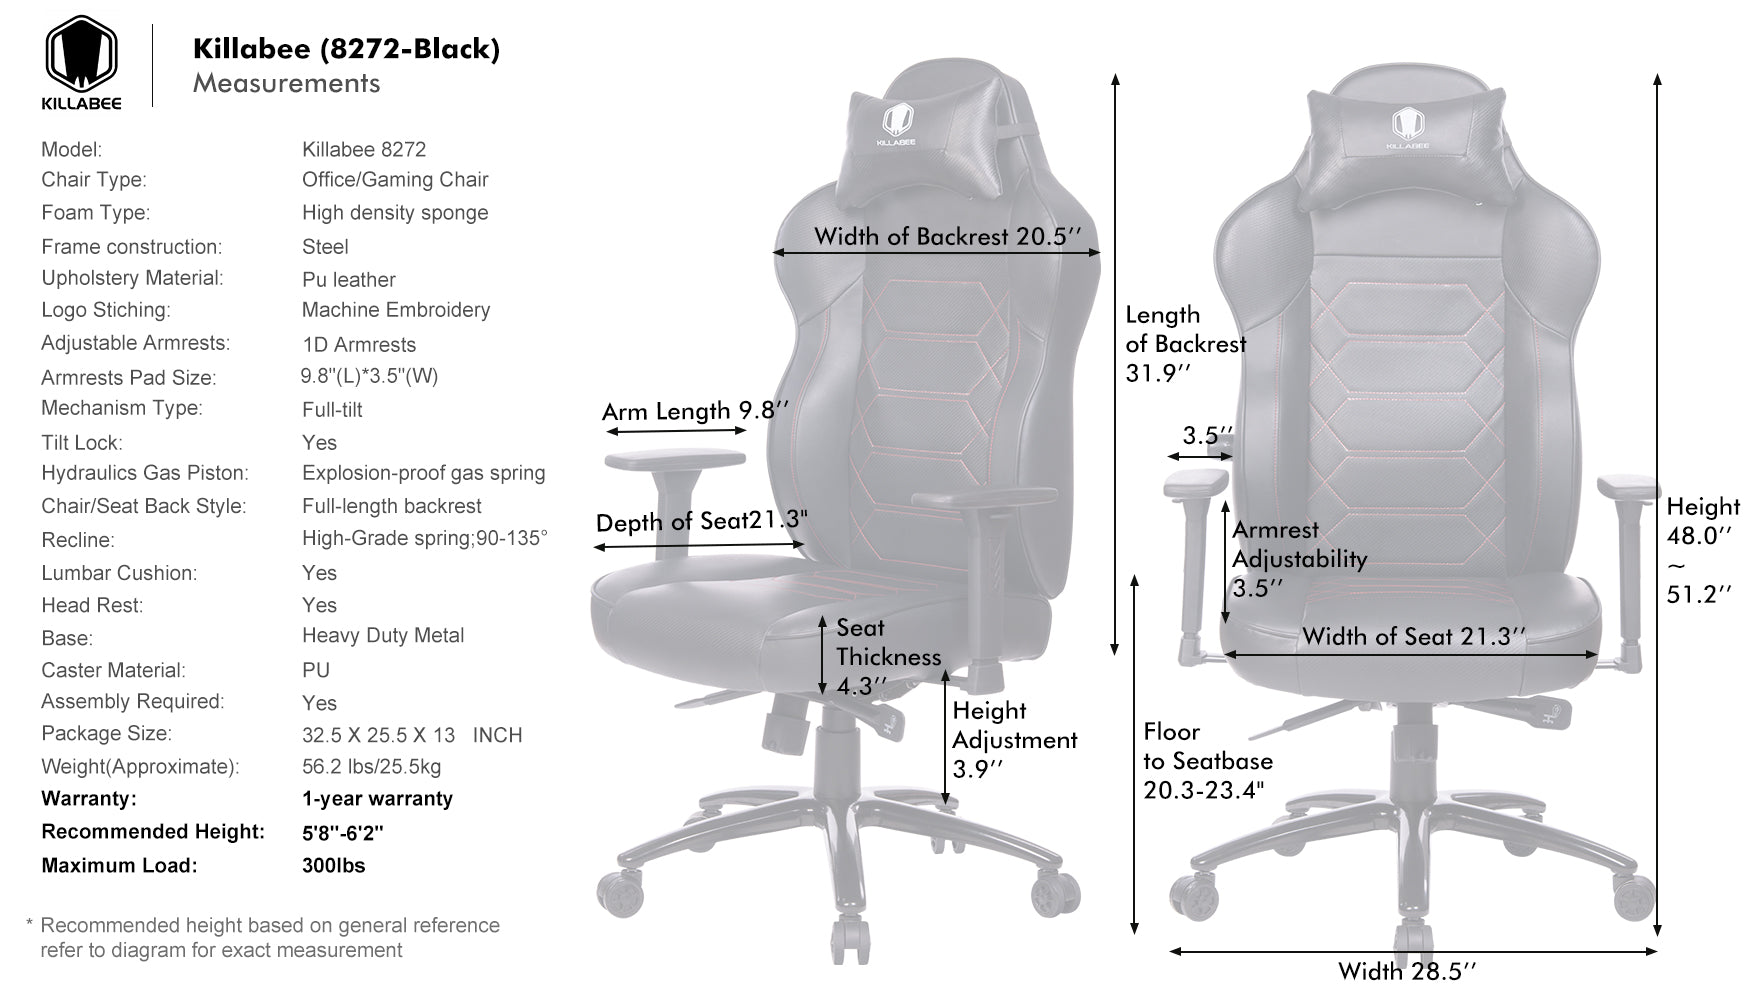 killabee 8272 gaming chair product details